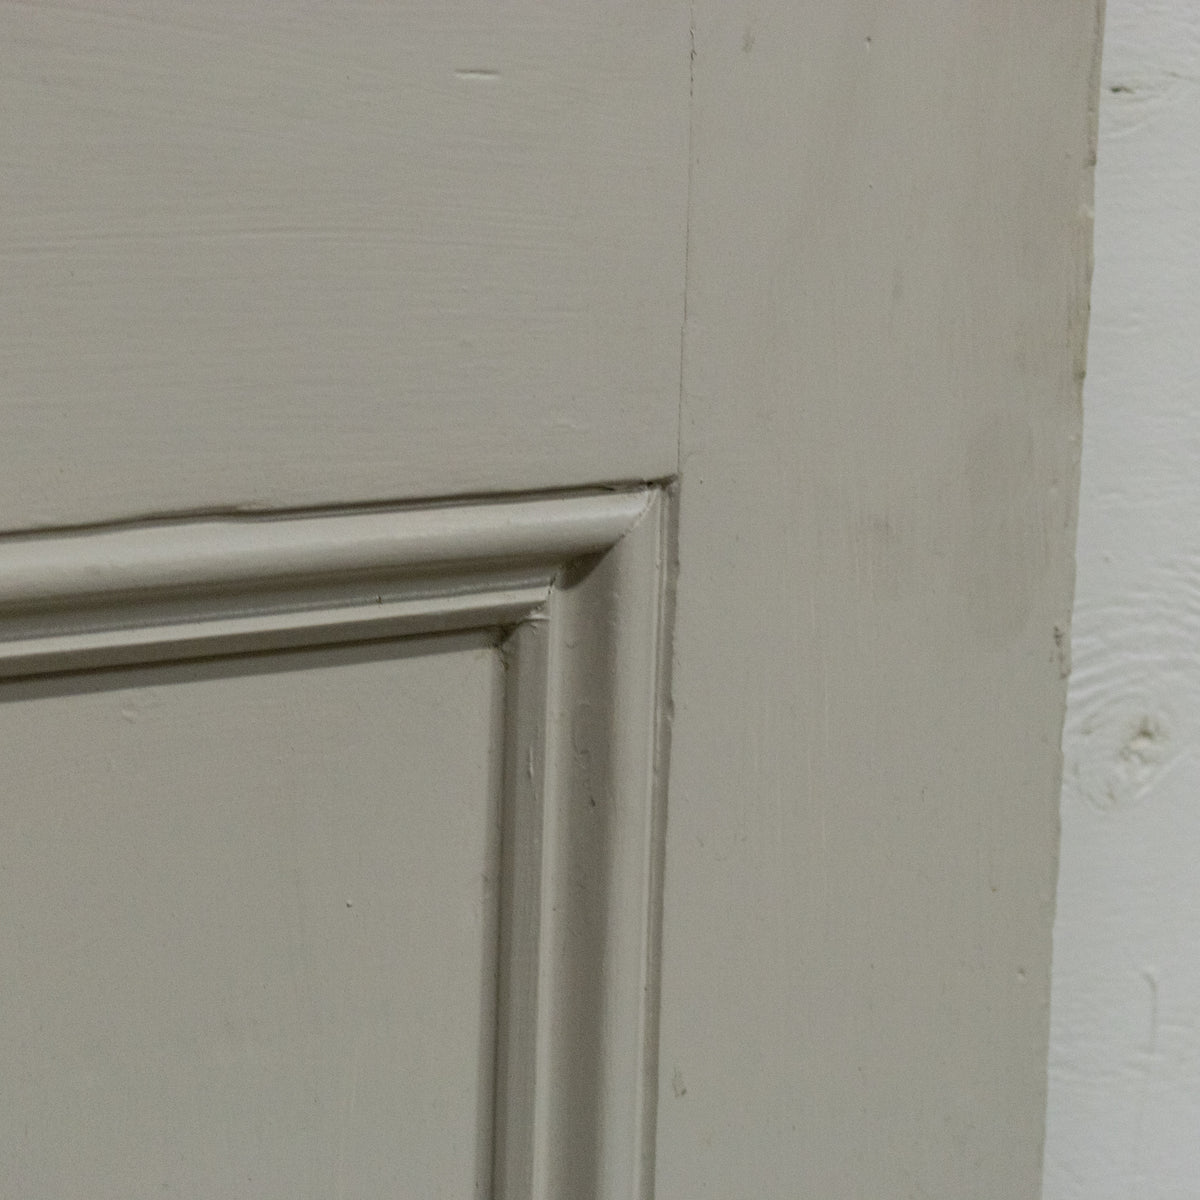 Antique Victorian 4 Panel Door - 201cm x 80cm | The Architectural Forum